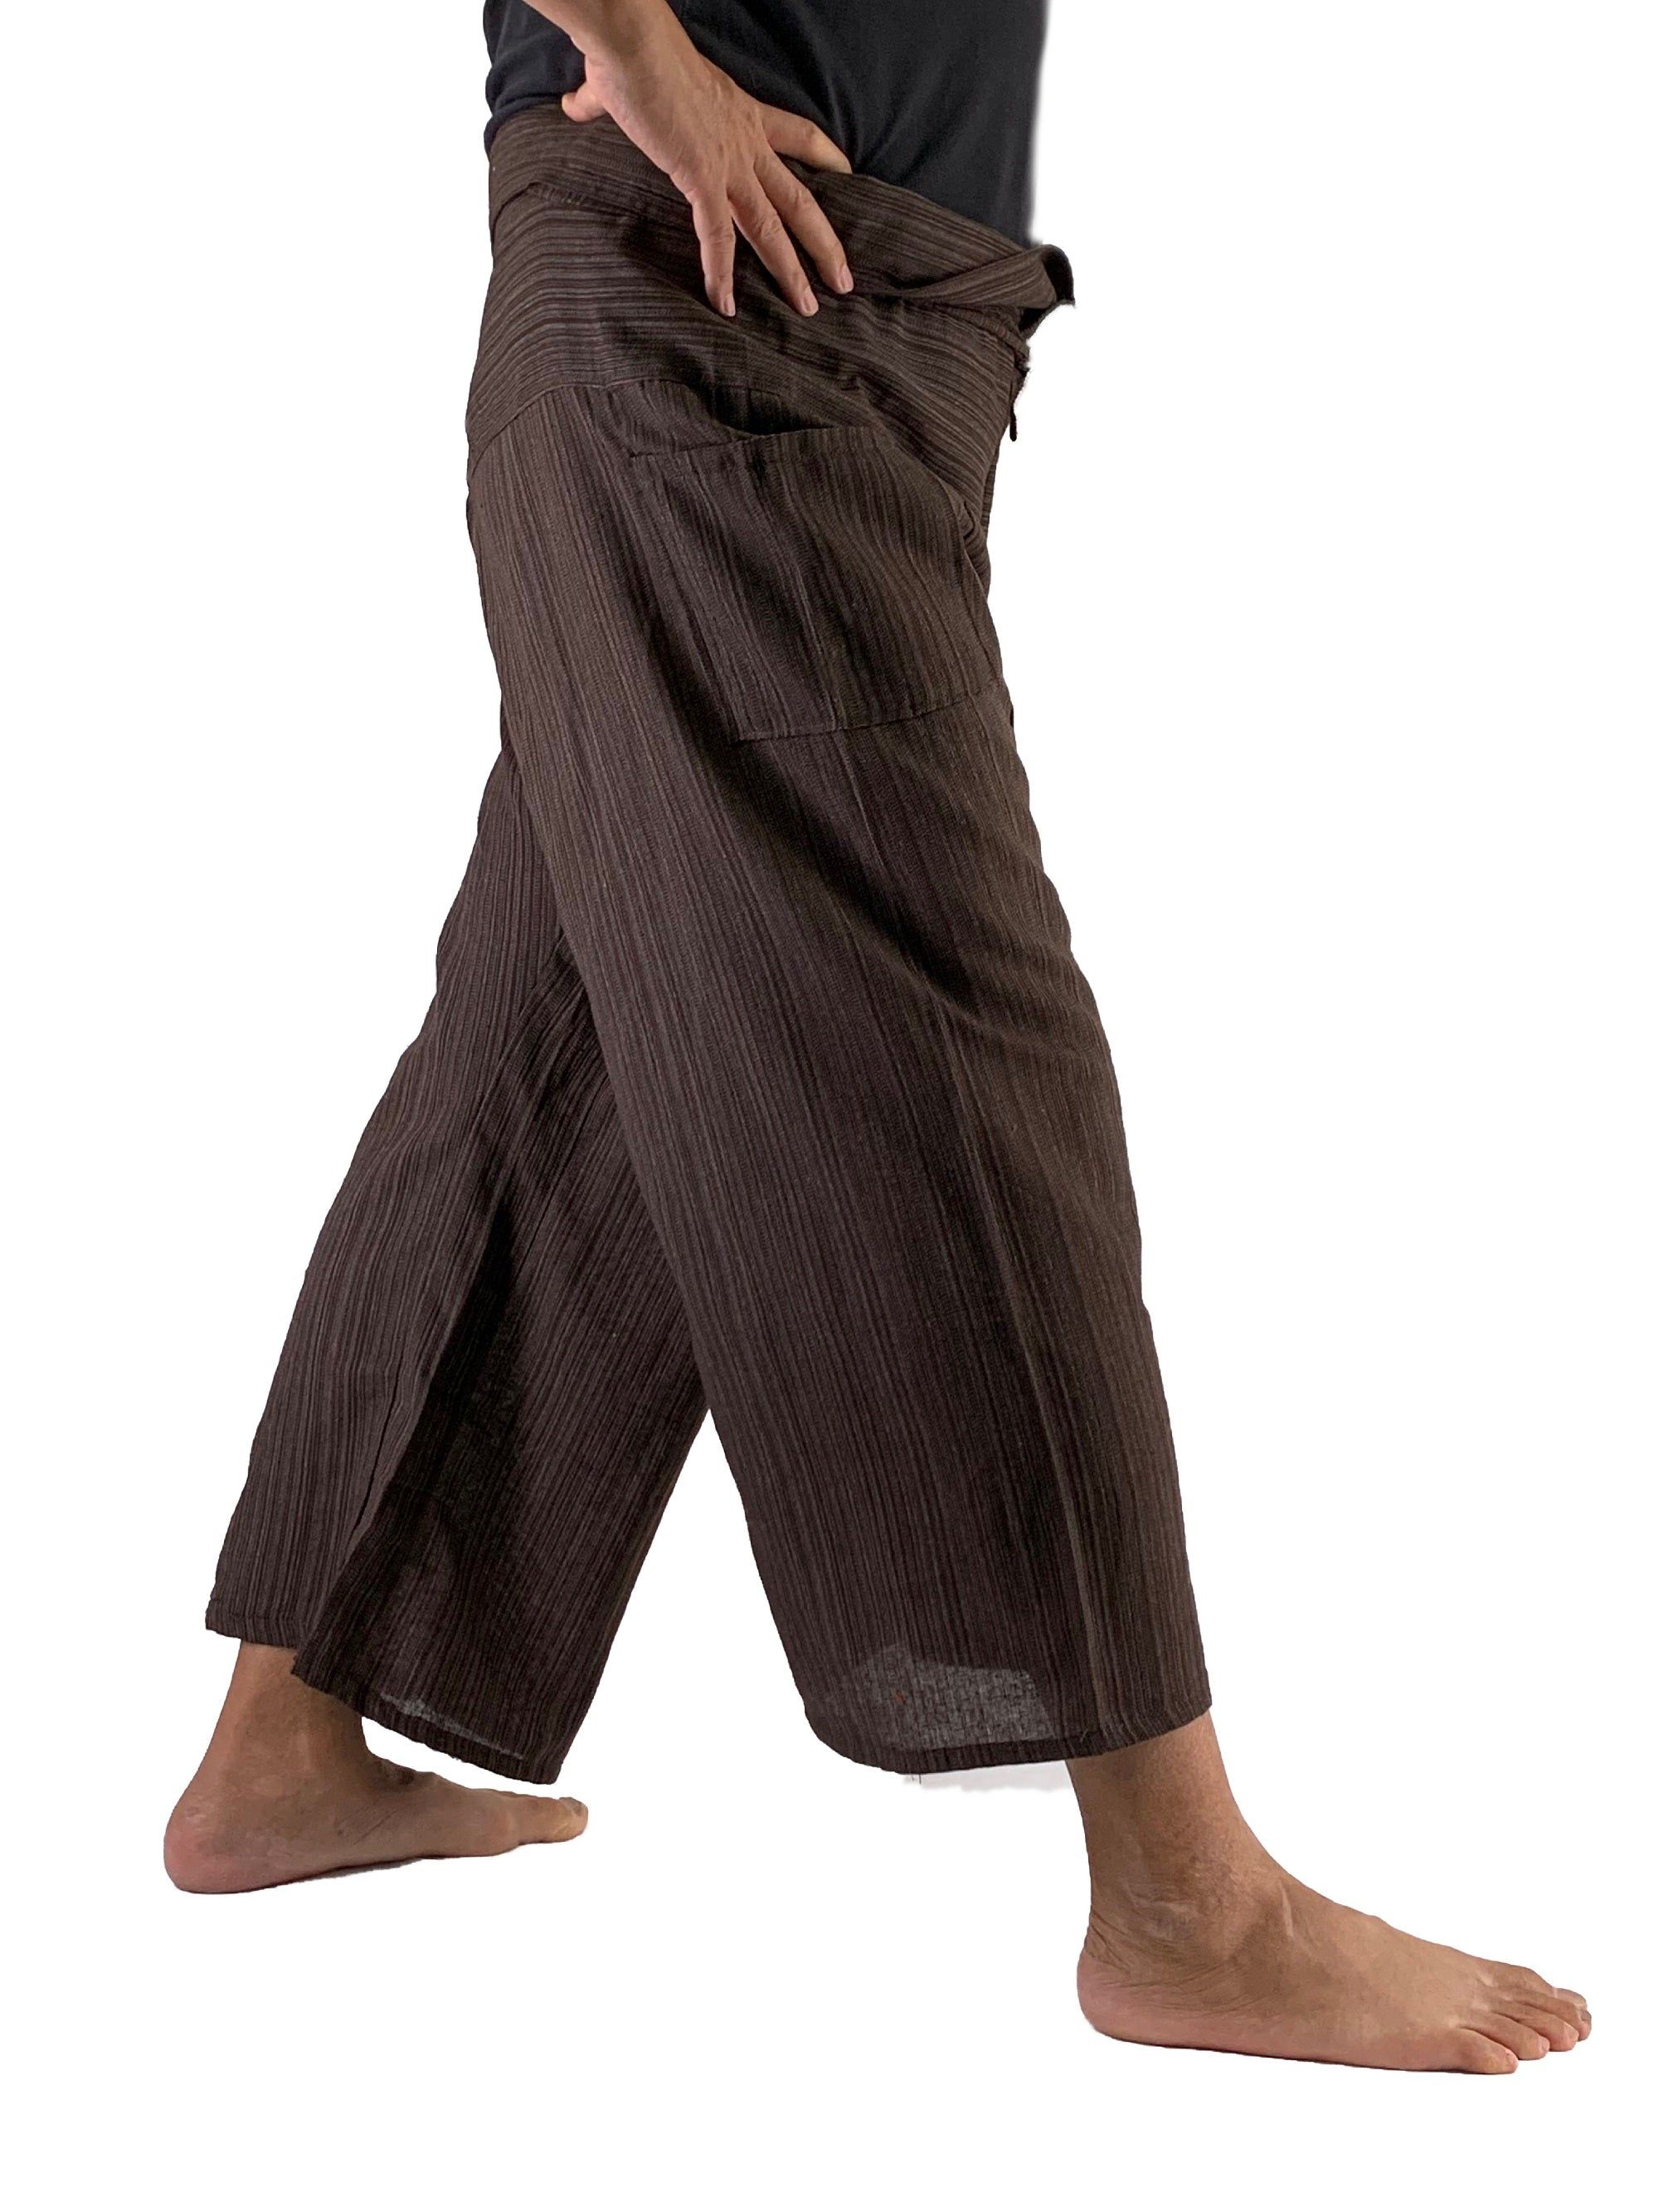 Men's Cargo Pants 100% Cotton